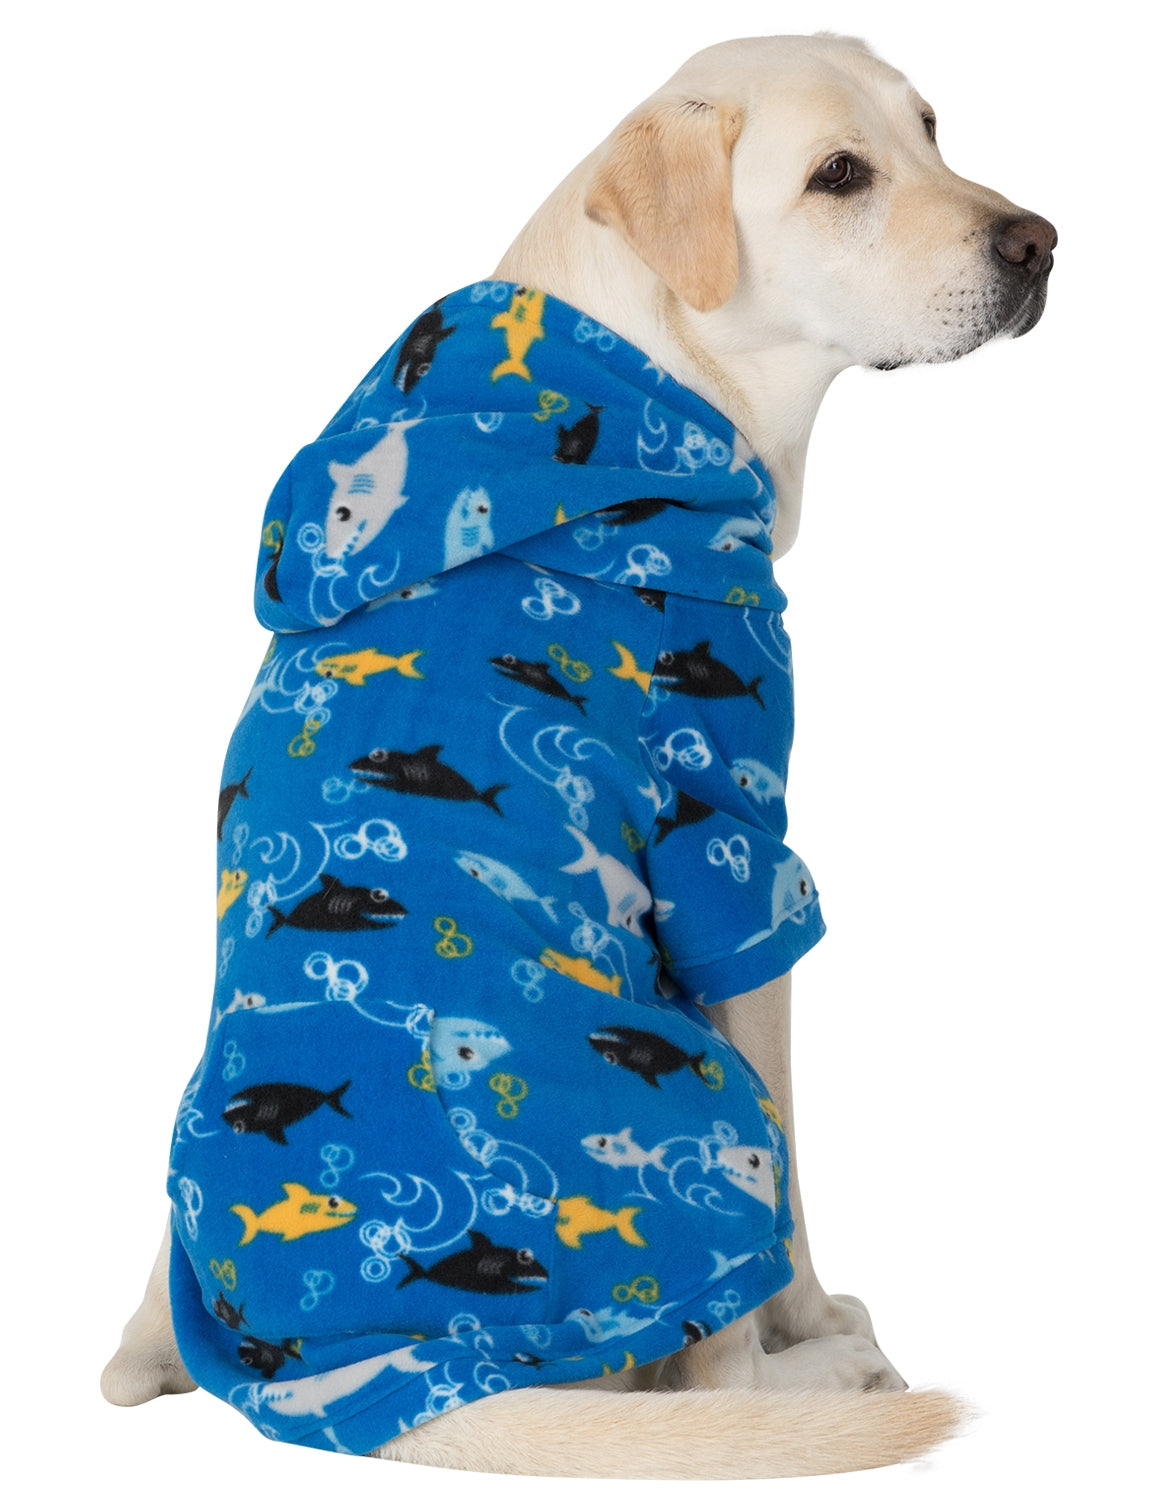 Shark Frenzy Pet Pjs Fleece Hoodie